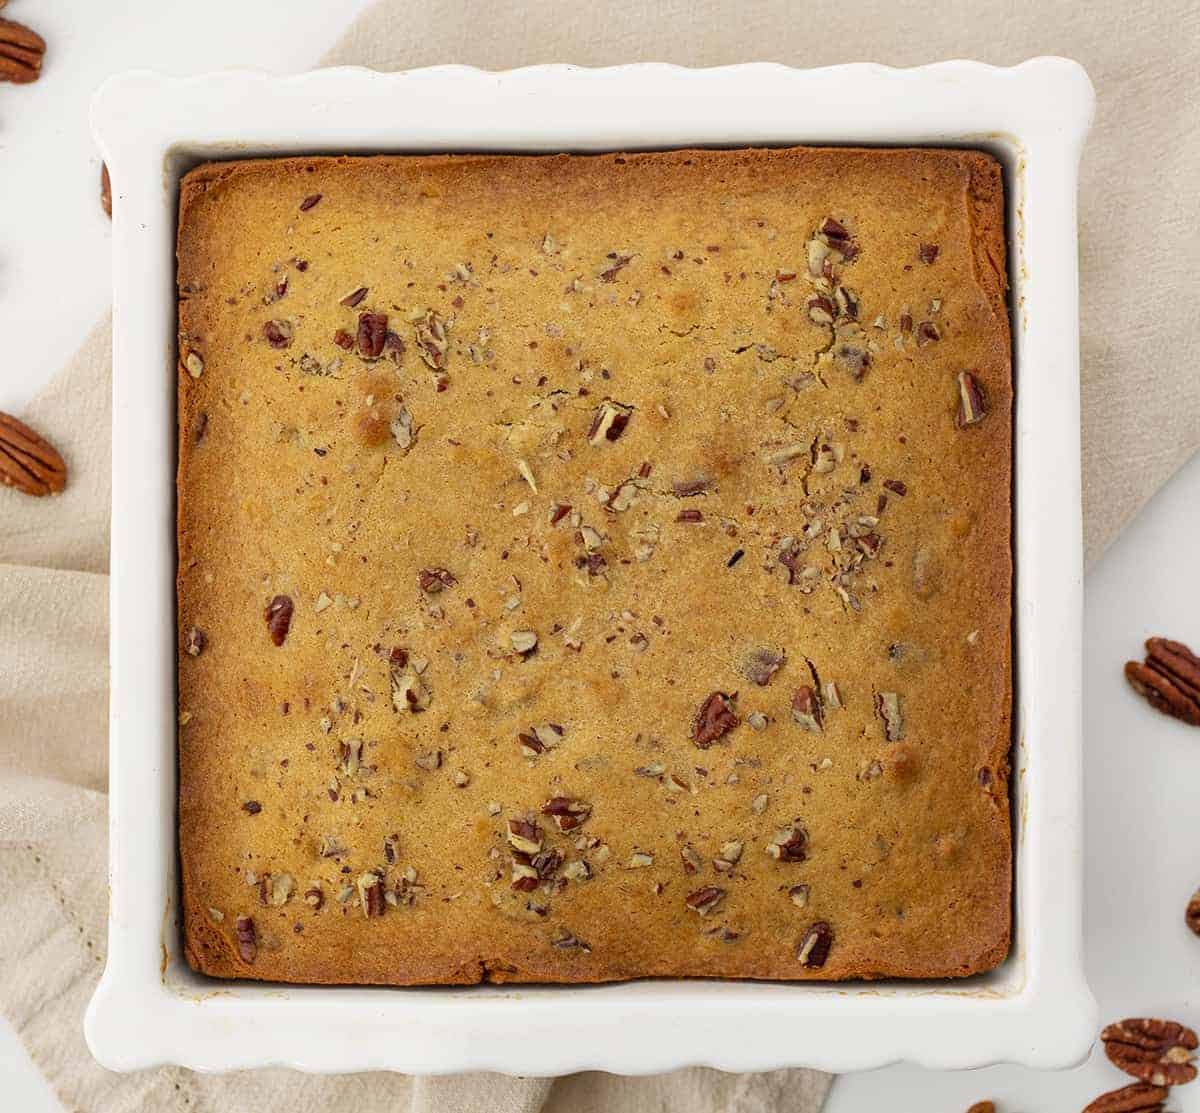 Overhead of Maple Pecan Snack Cake in White Pan